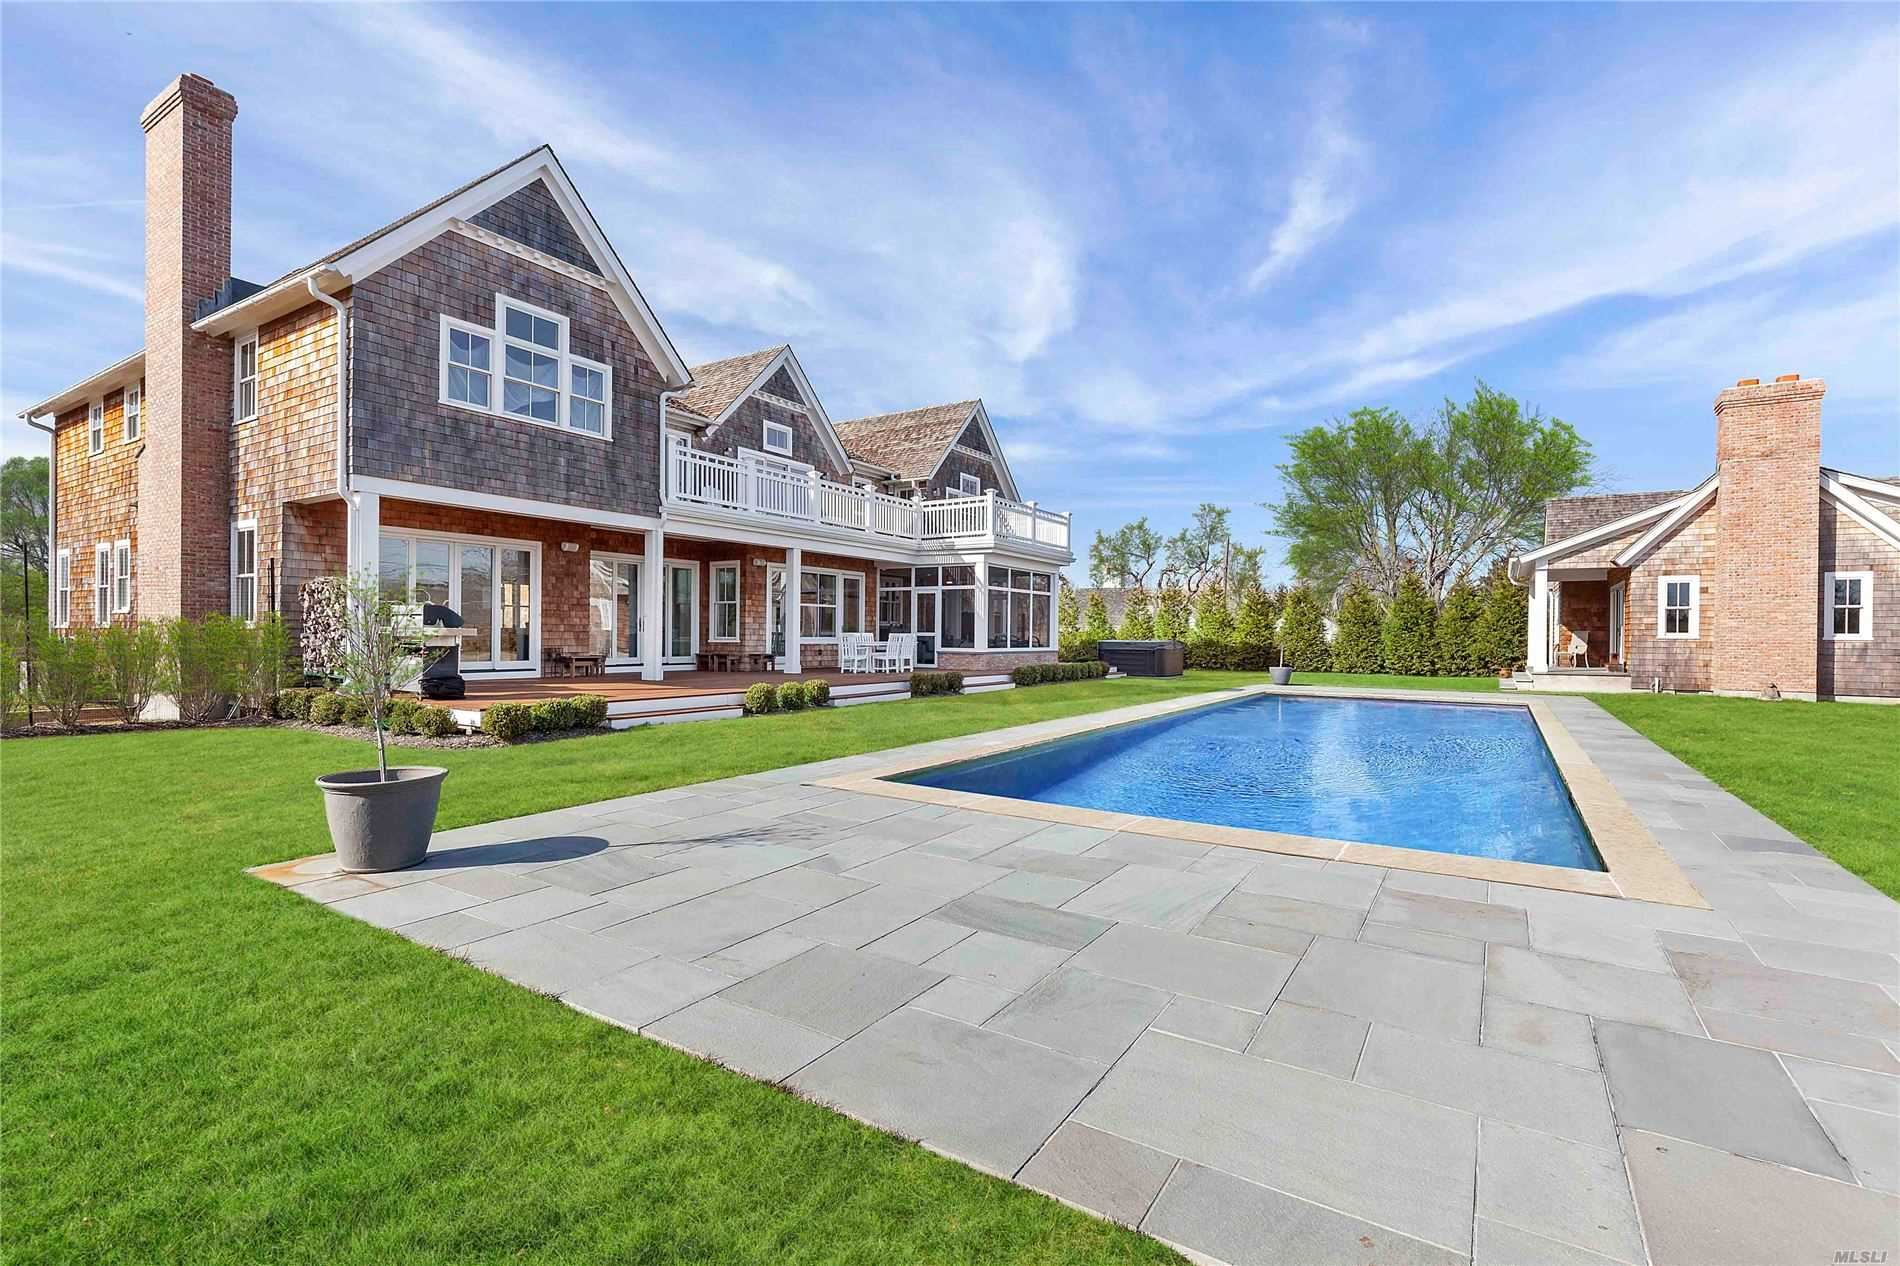 16 Assups Neck Lane, Quogue, NY 11959 - MLS#: 3207975